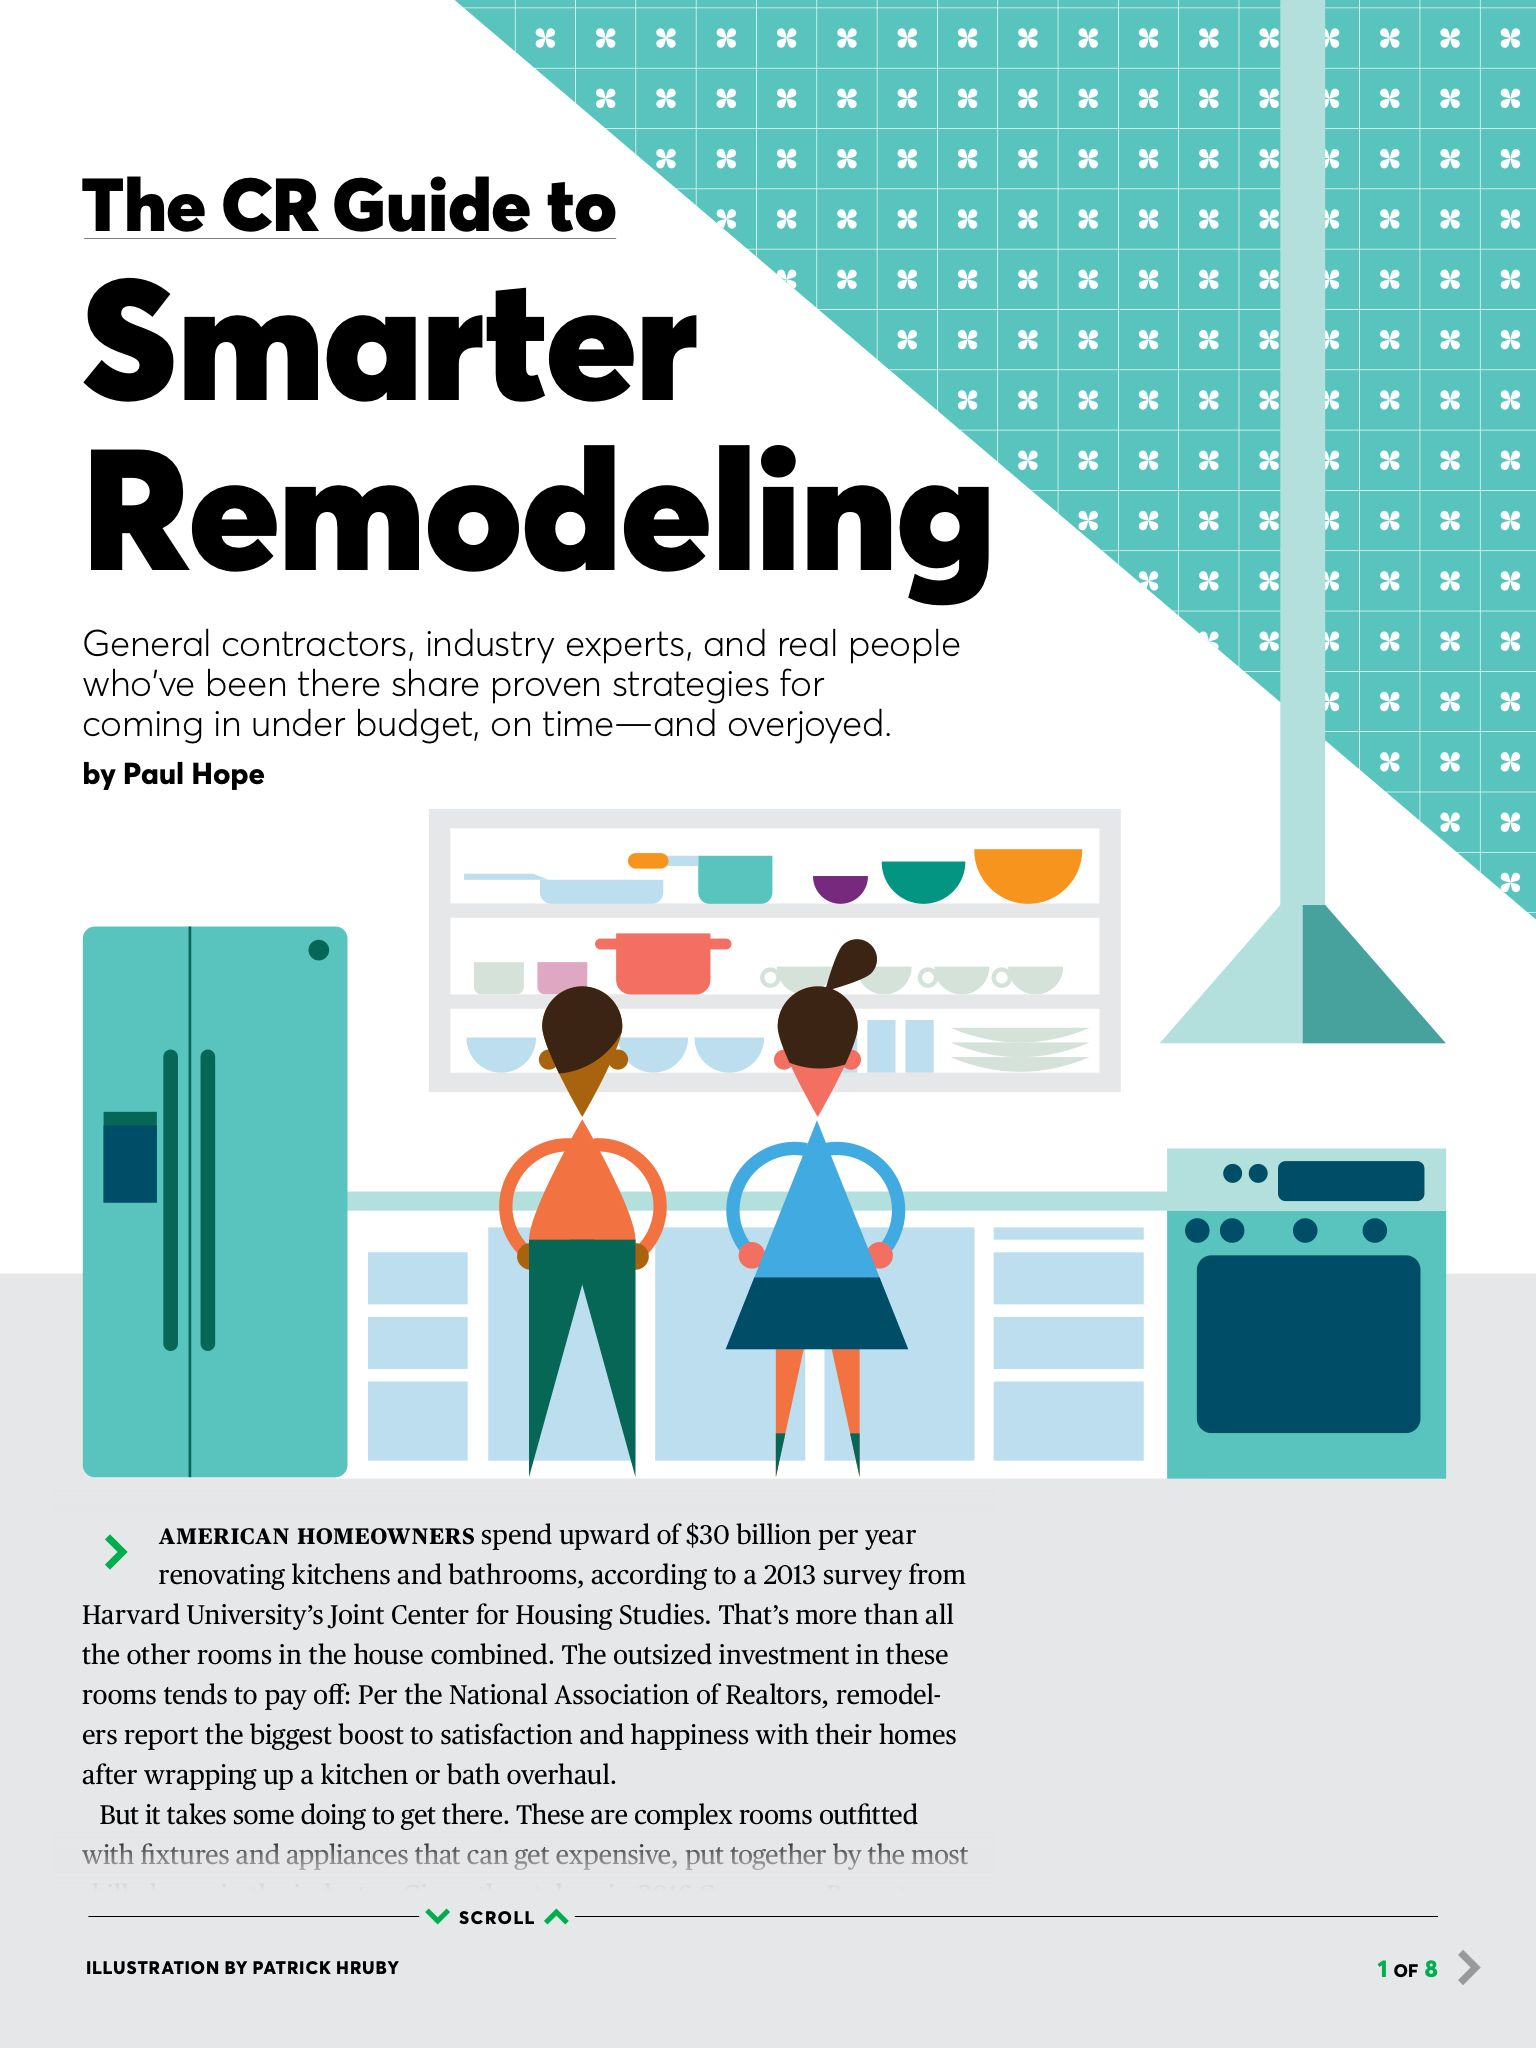 The CR Guide to Smarter Remodeling\